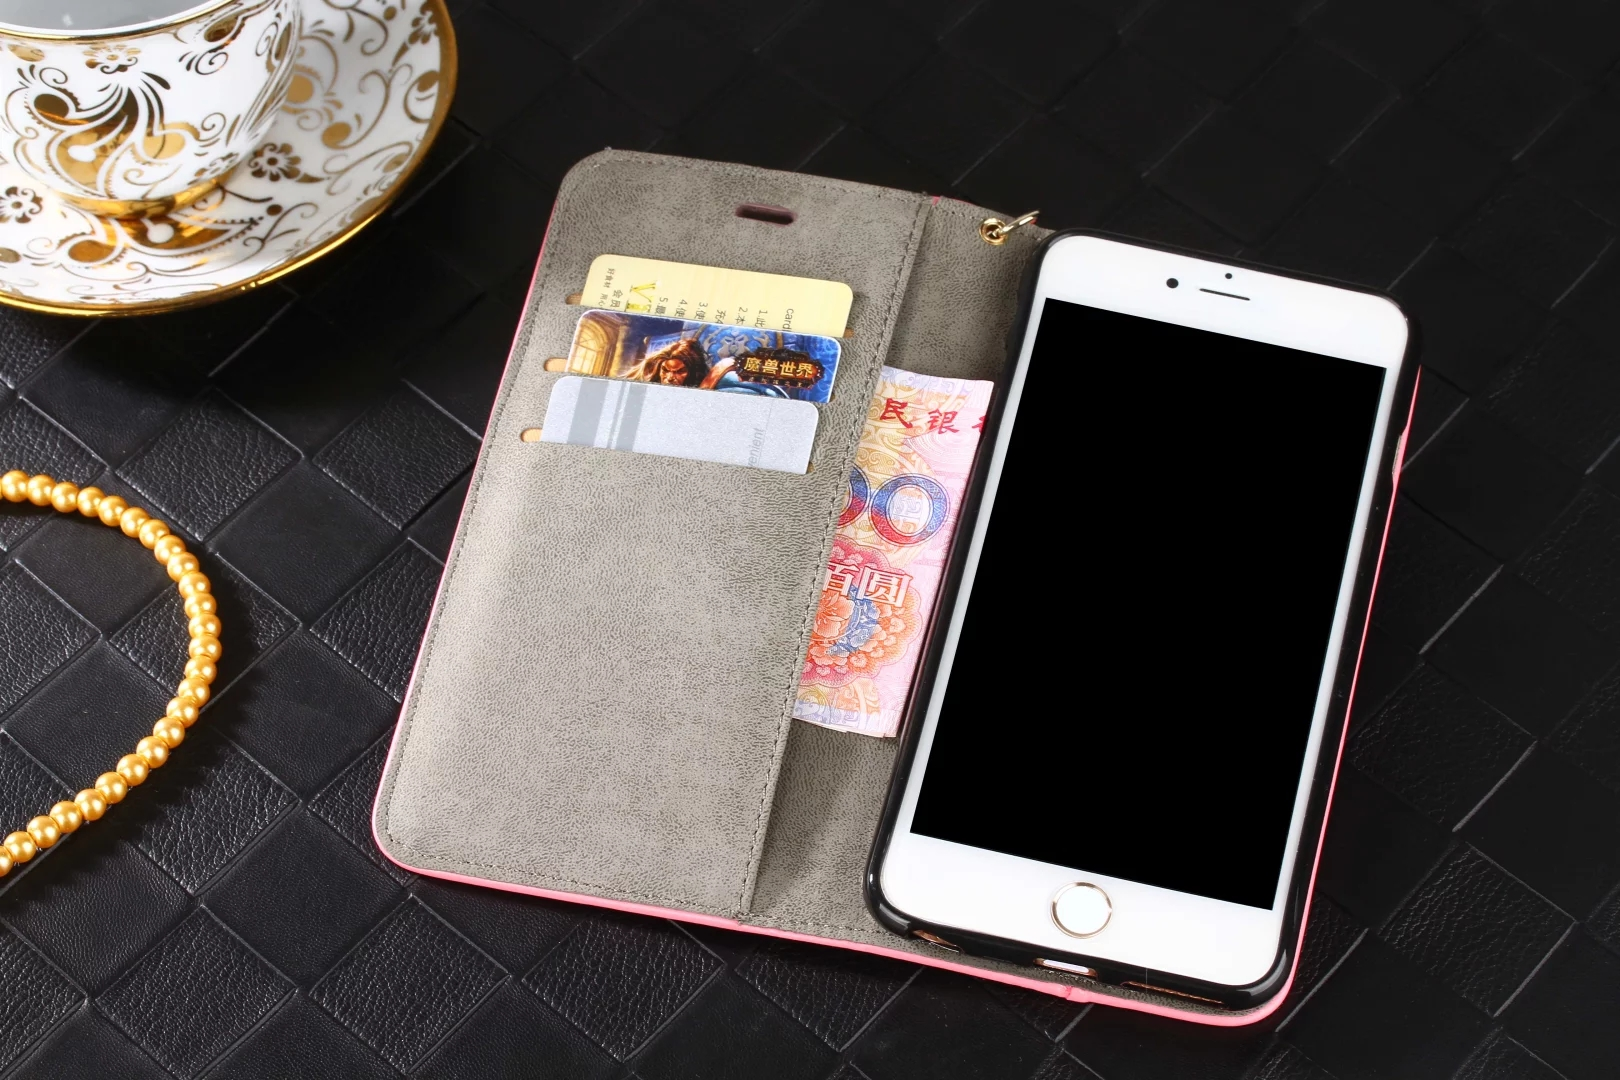 best phone cases for iphone 8 iphone 8 case cover coach iphone 8 case iphone cover 8 iphone 8 cass designer leather iphone case phonecases iphone 8 branded cases iphone 8 full cover case